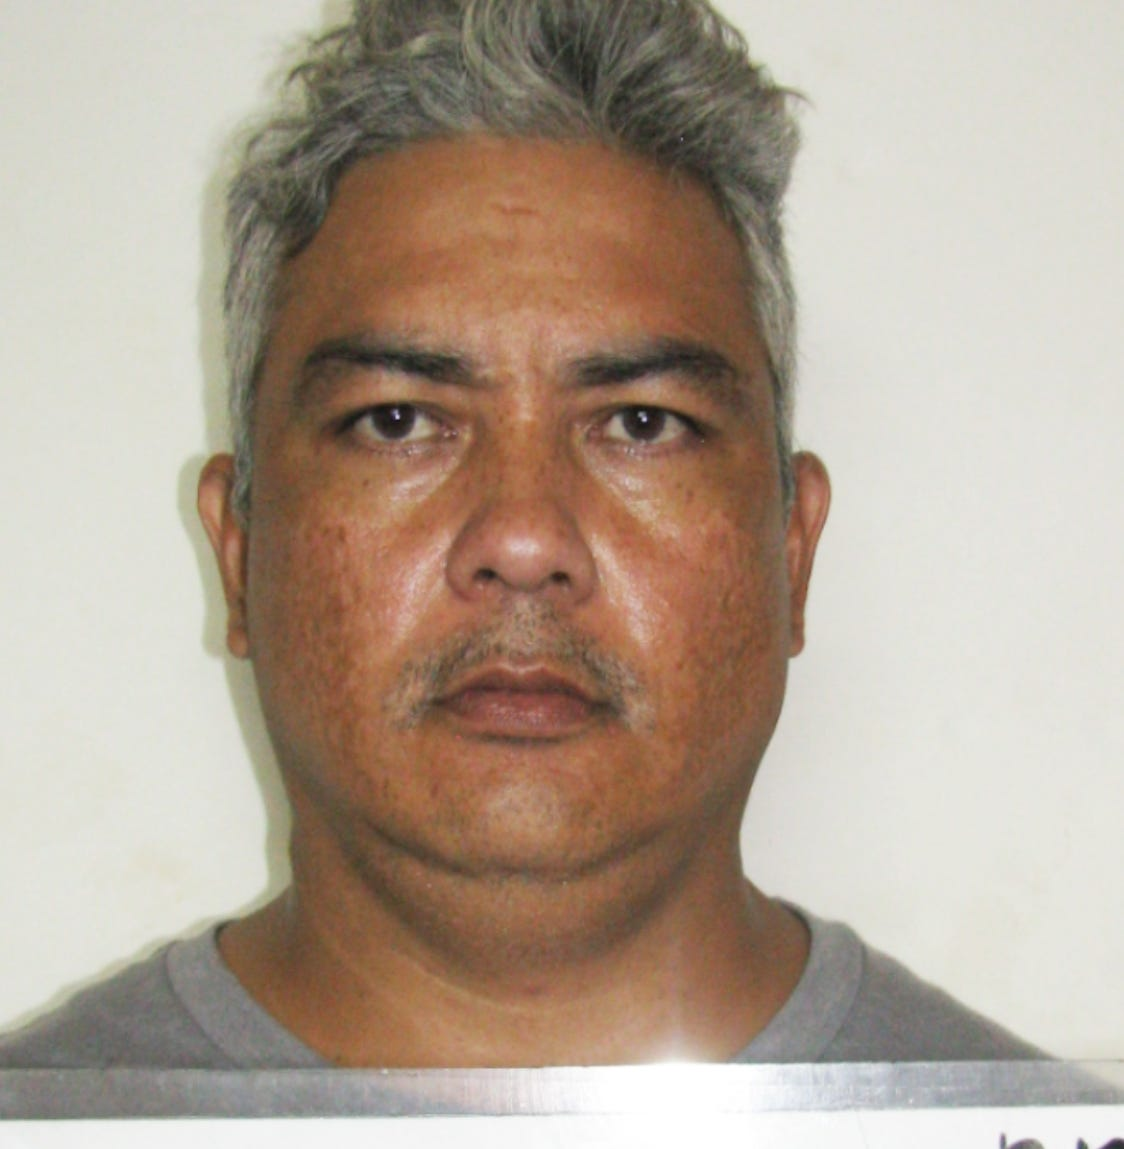 Steven Leon Guerrero allegedly found with homemade pipe in DOC cell